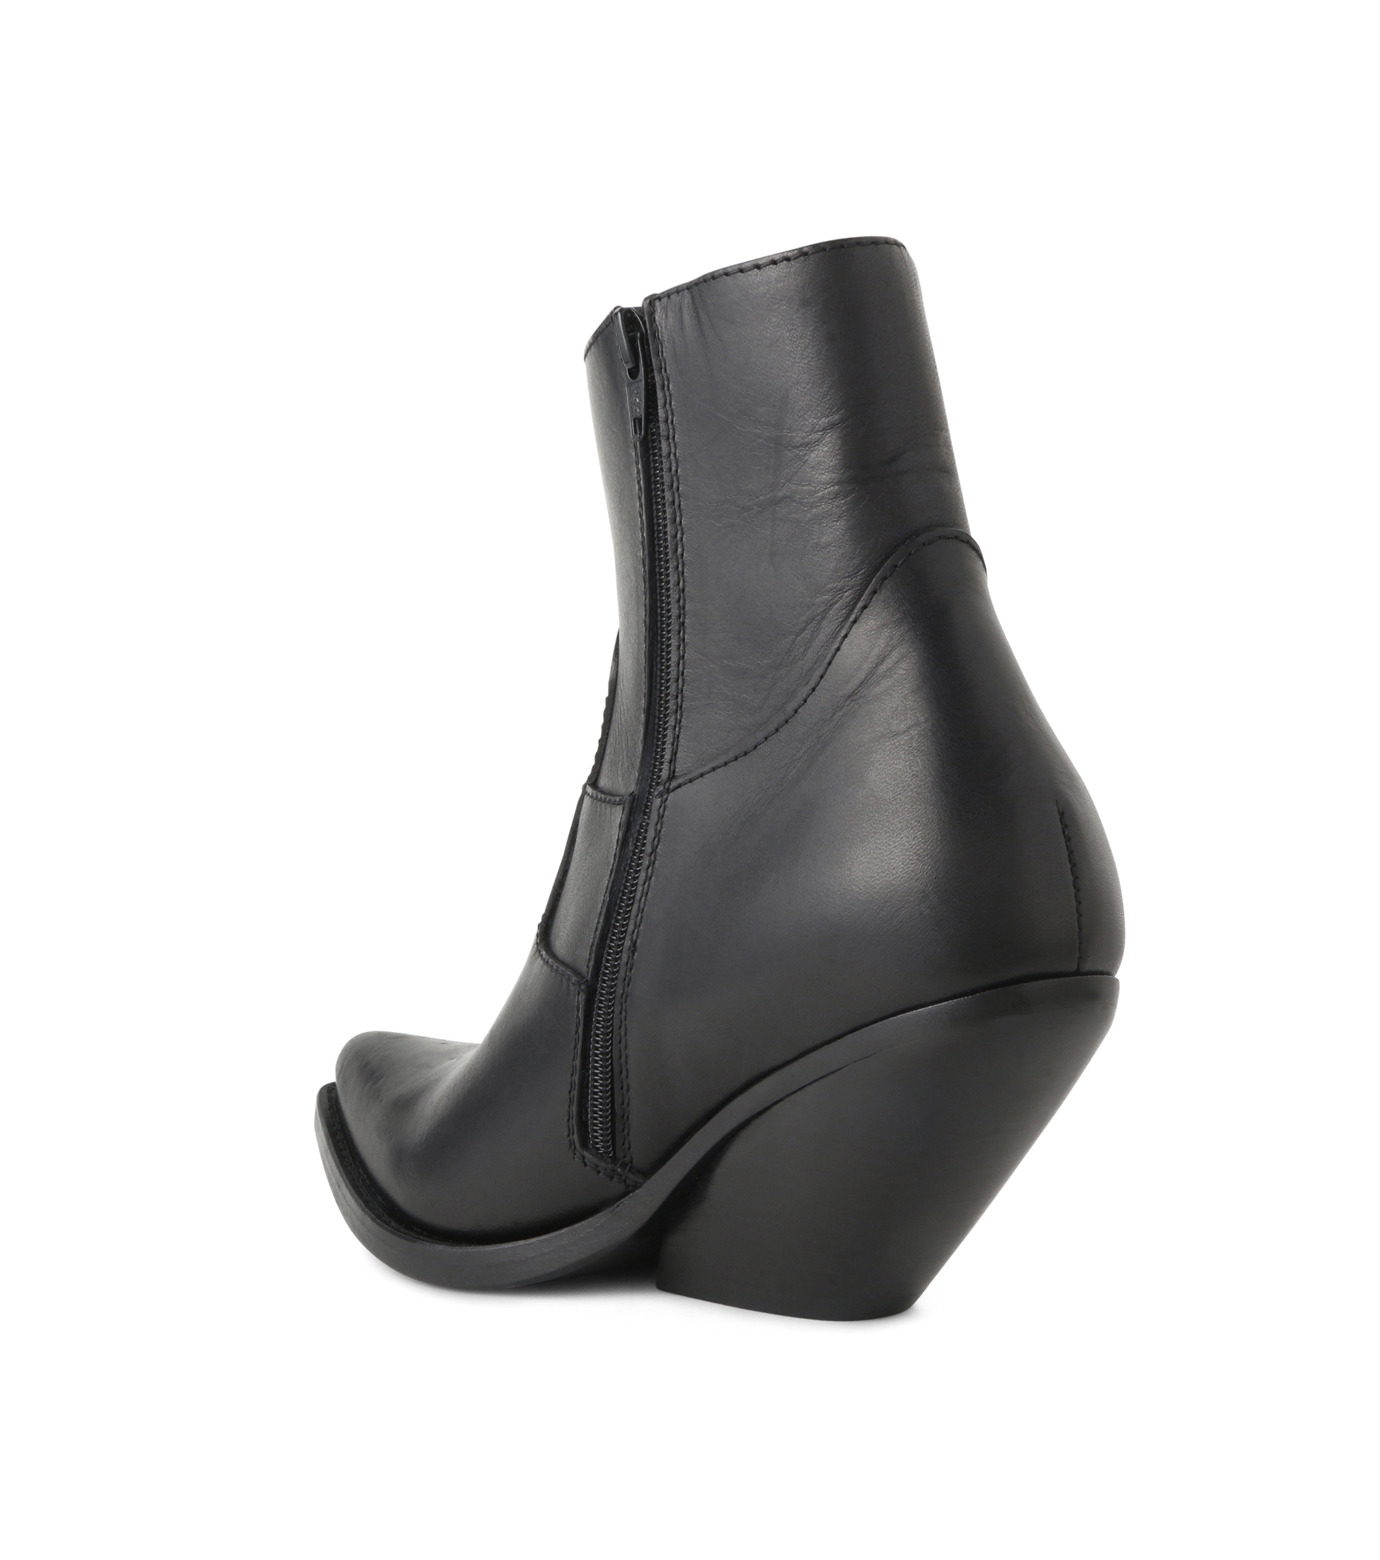 VETEMENTS(ヴェトモン)のCowboy Ankle Boots-BLACK(ブーツ/boots)-15796-13 拡大詳細画像2